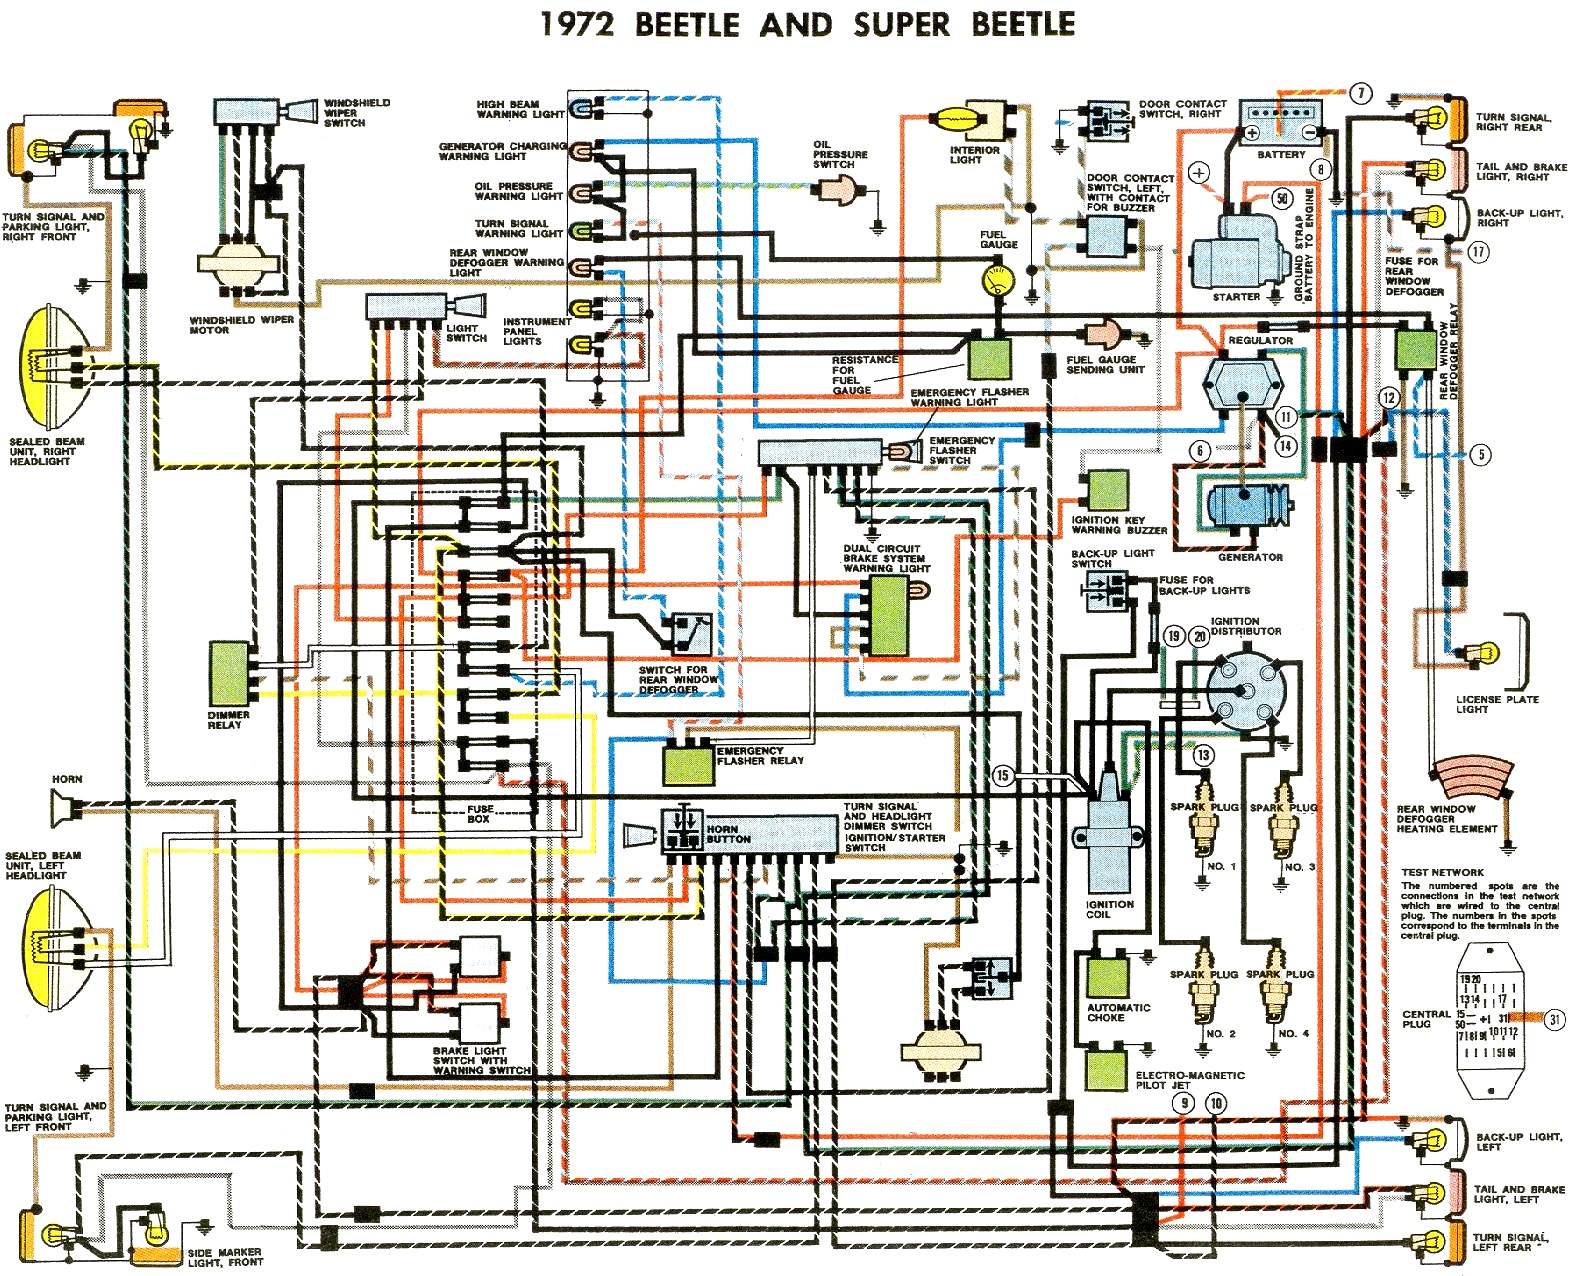 1972 vw beetle wiring diagram detailed schematics diagram rh mrskindsclass  com 69 Beetle Ignition Wiring Diagram